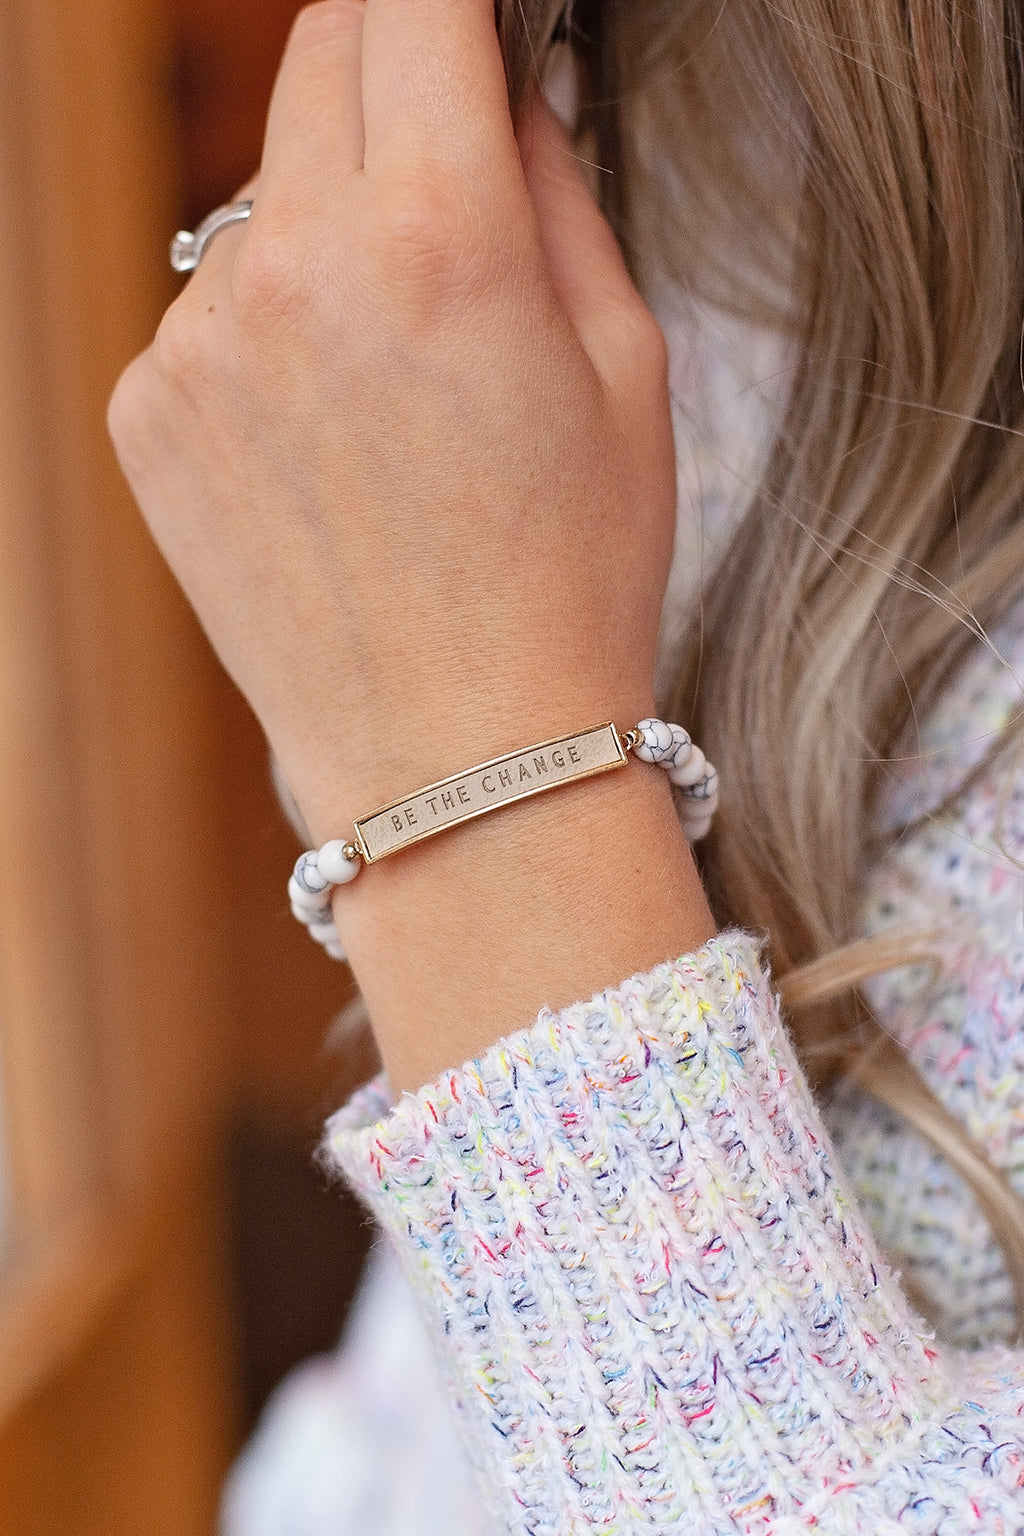 Be The Change {Bracelet}